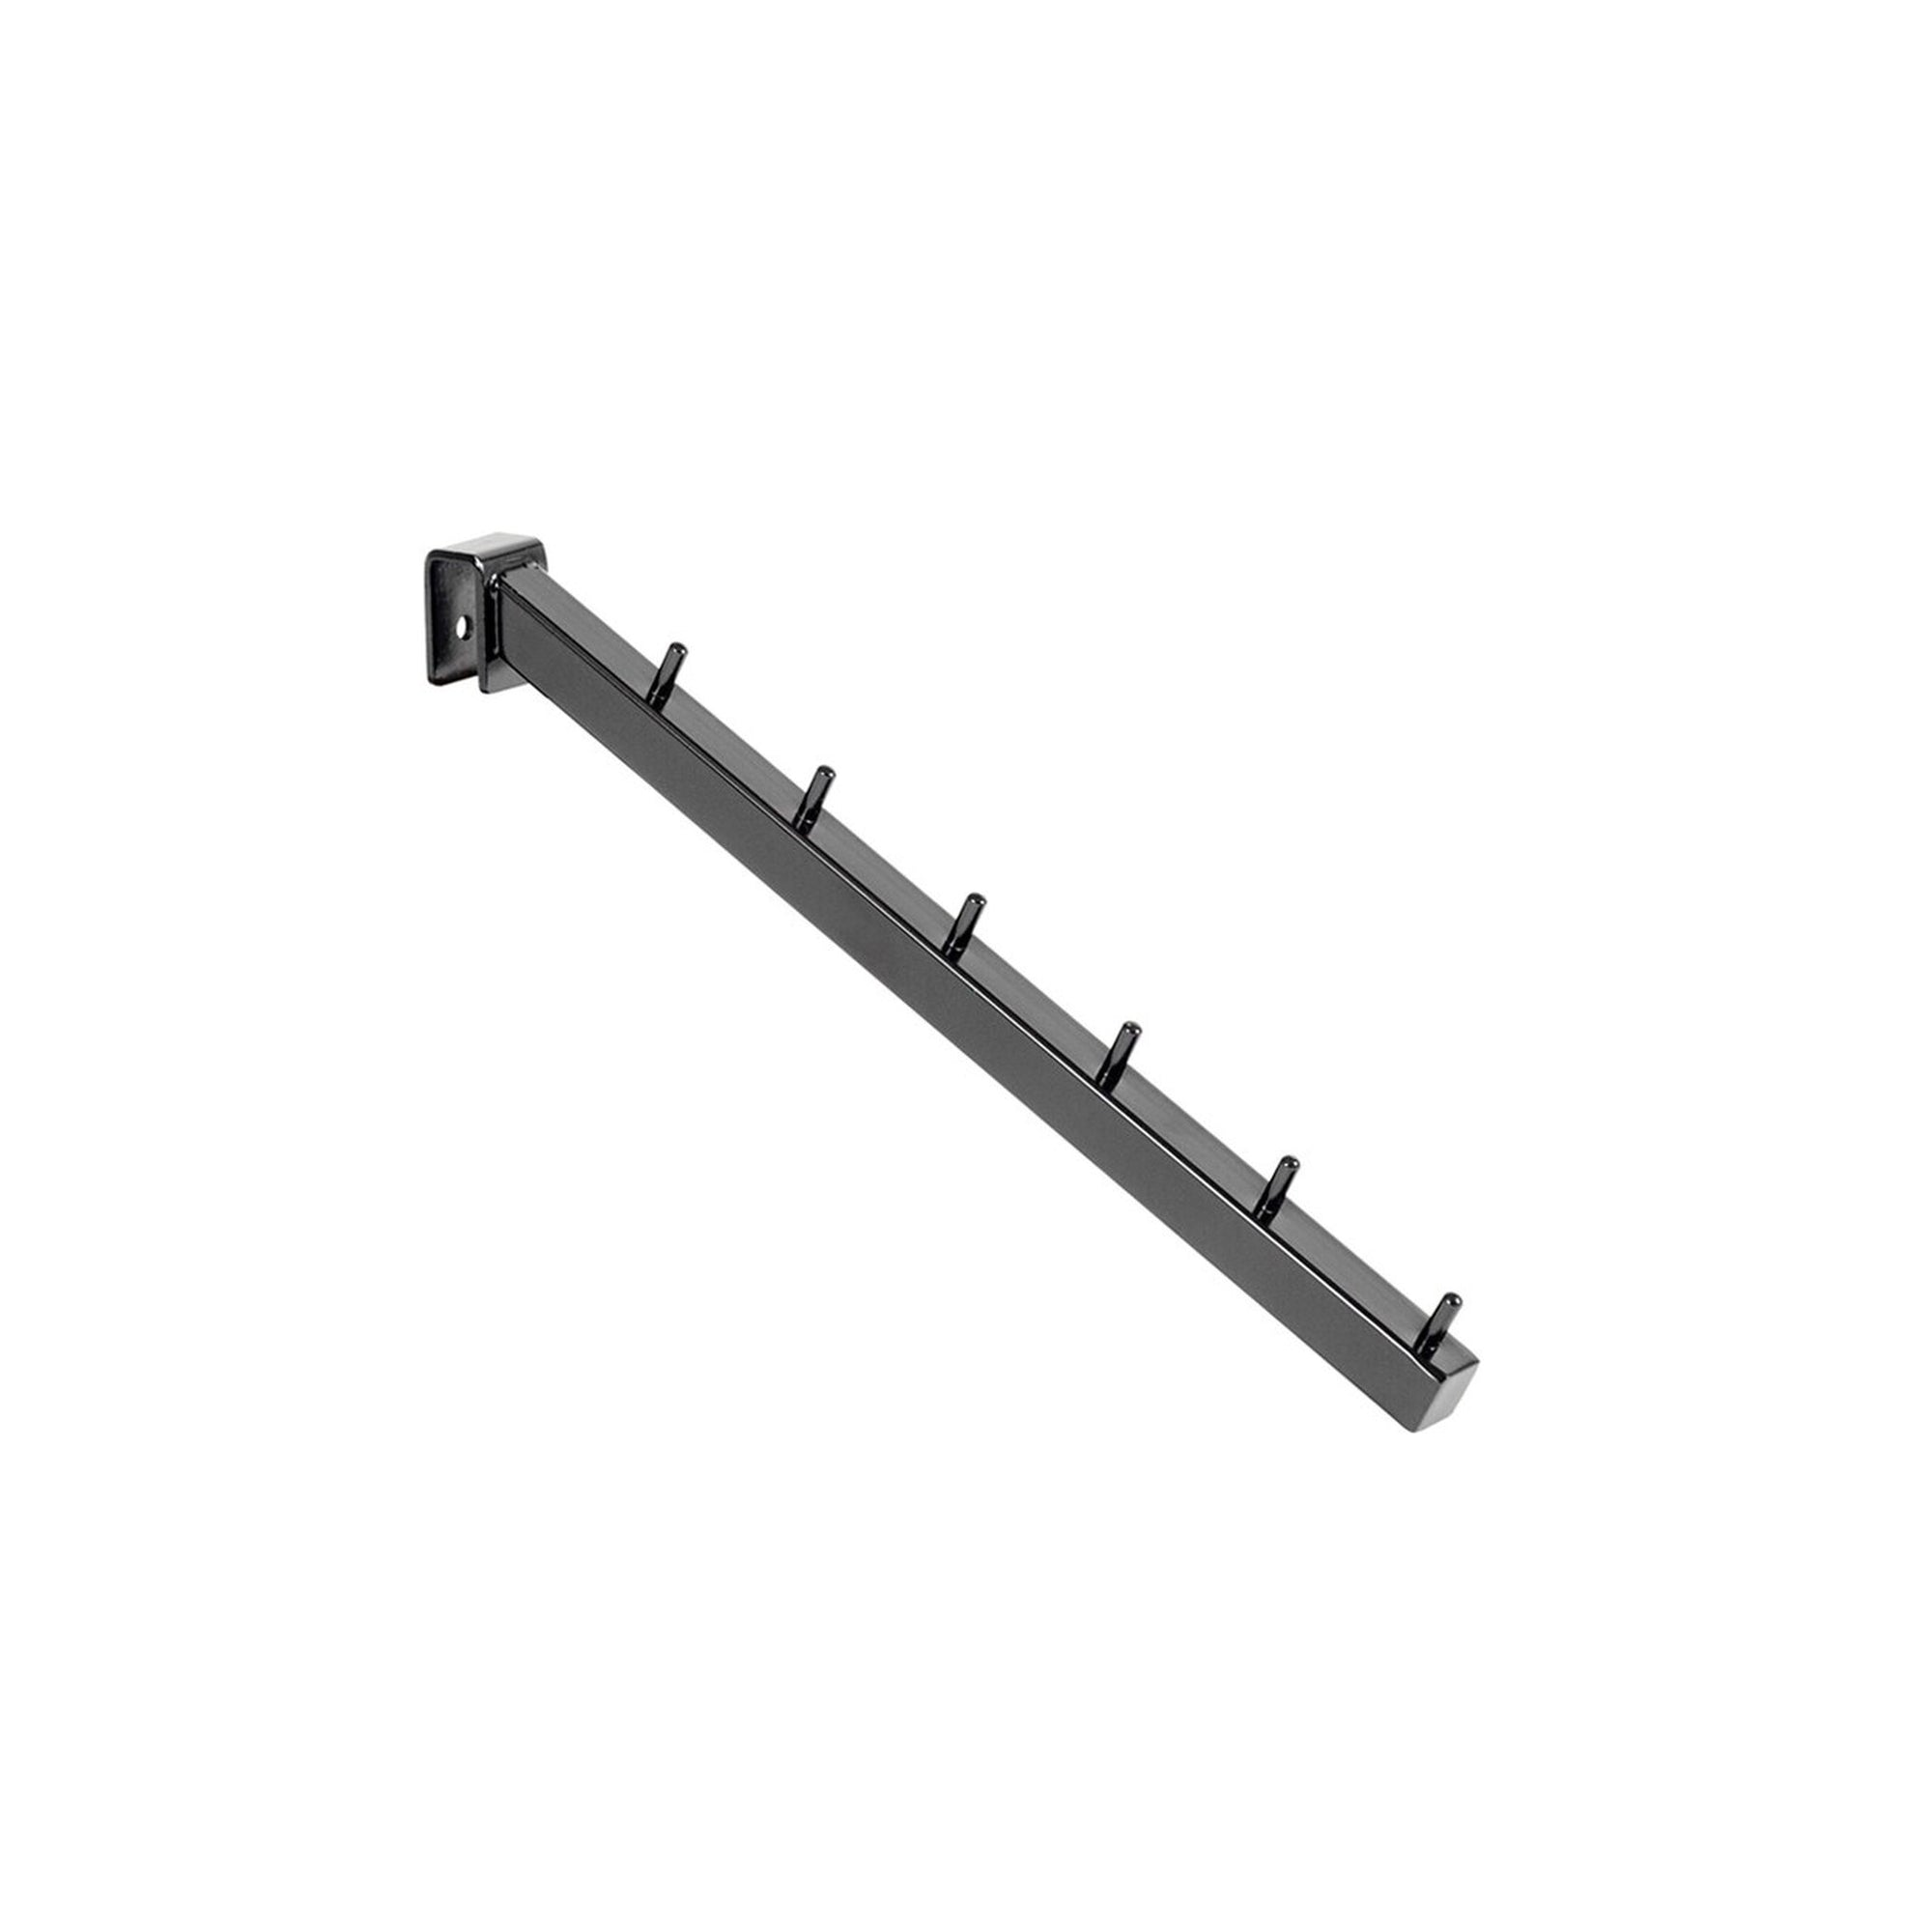 MAXe Backrail Waterfall Arm with 6 Pins - 310mm D x 18mm x 18 mm section (E4842)